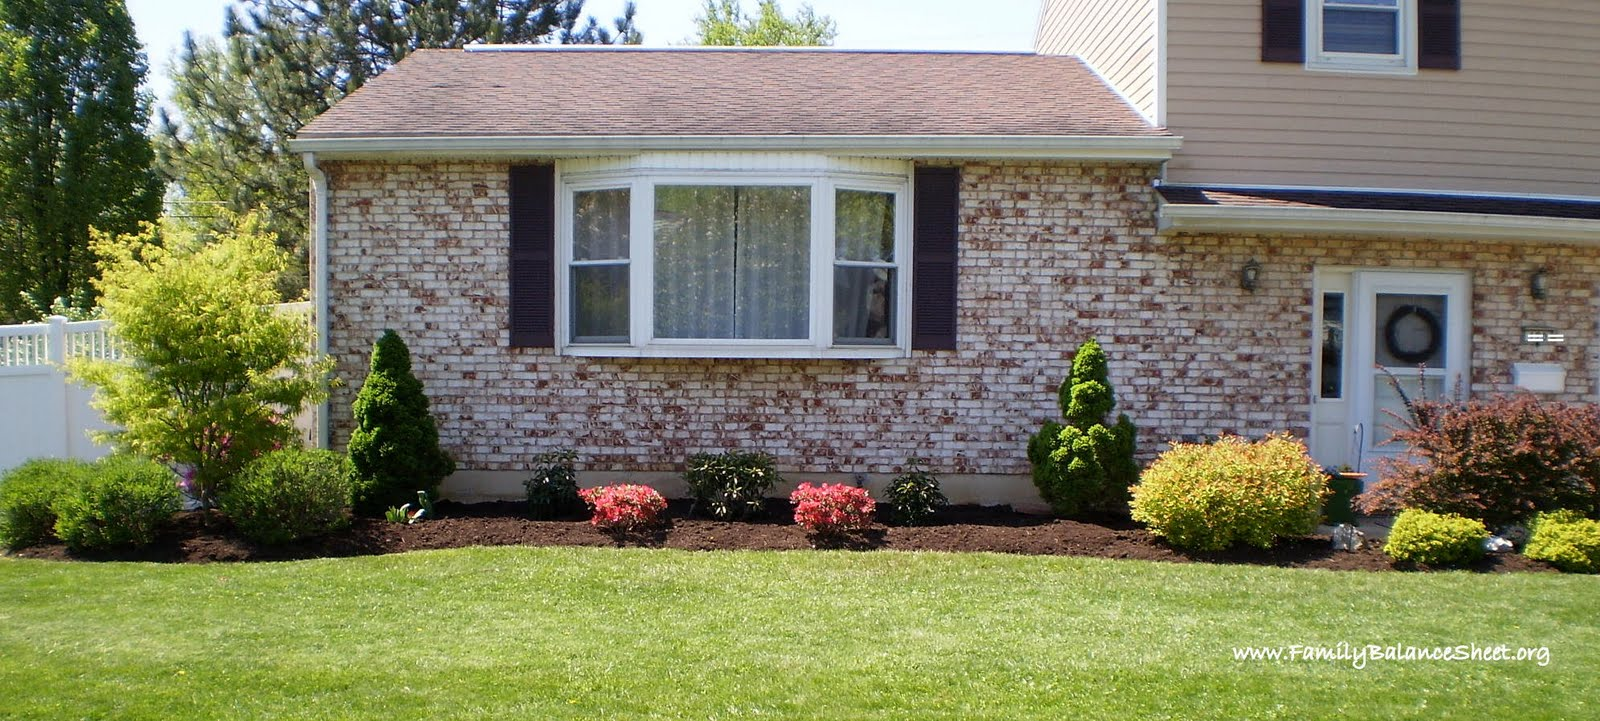 15 tips to help you design your front yard save money too for The best front yard landscaping